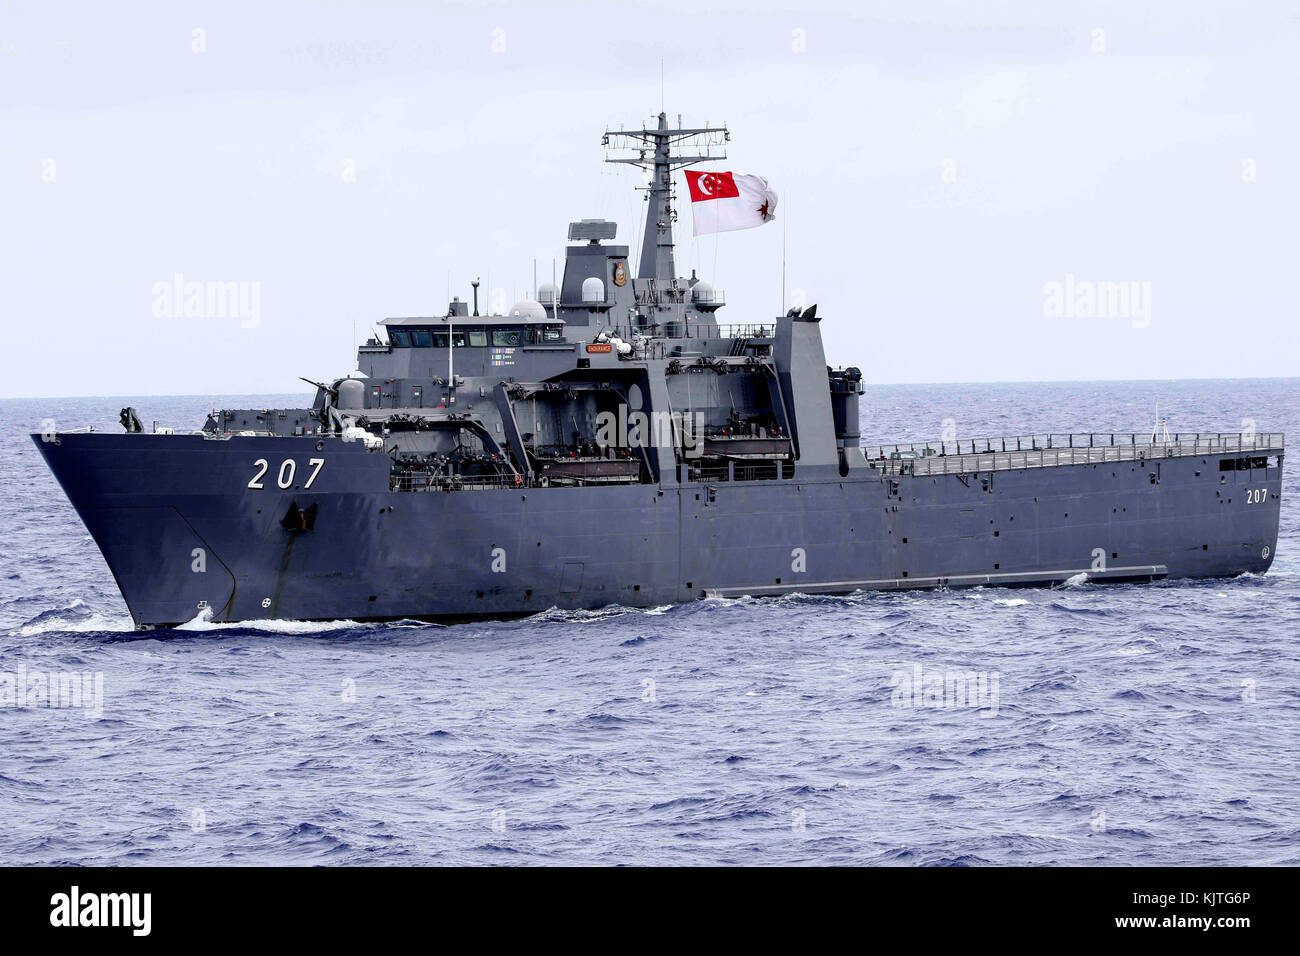 The Singaporean Navy Endurance-class landing platform dock ship RSS Endurance steams underway during exercise Pacific - Stock Image